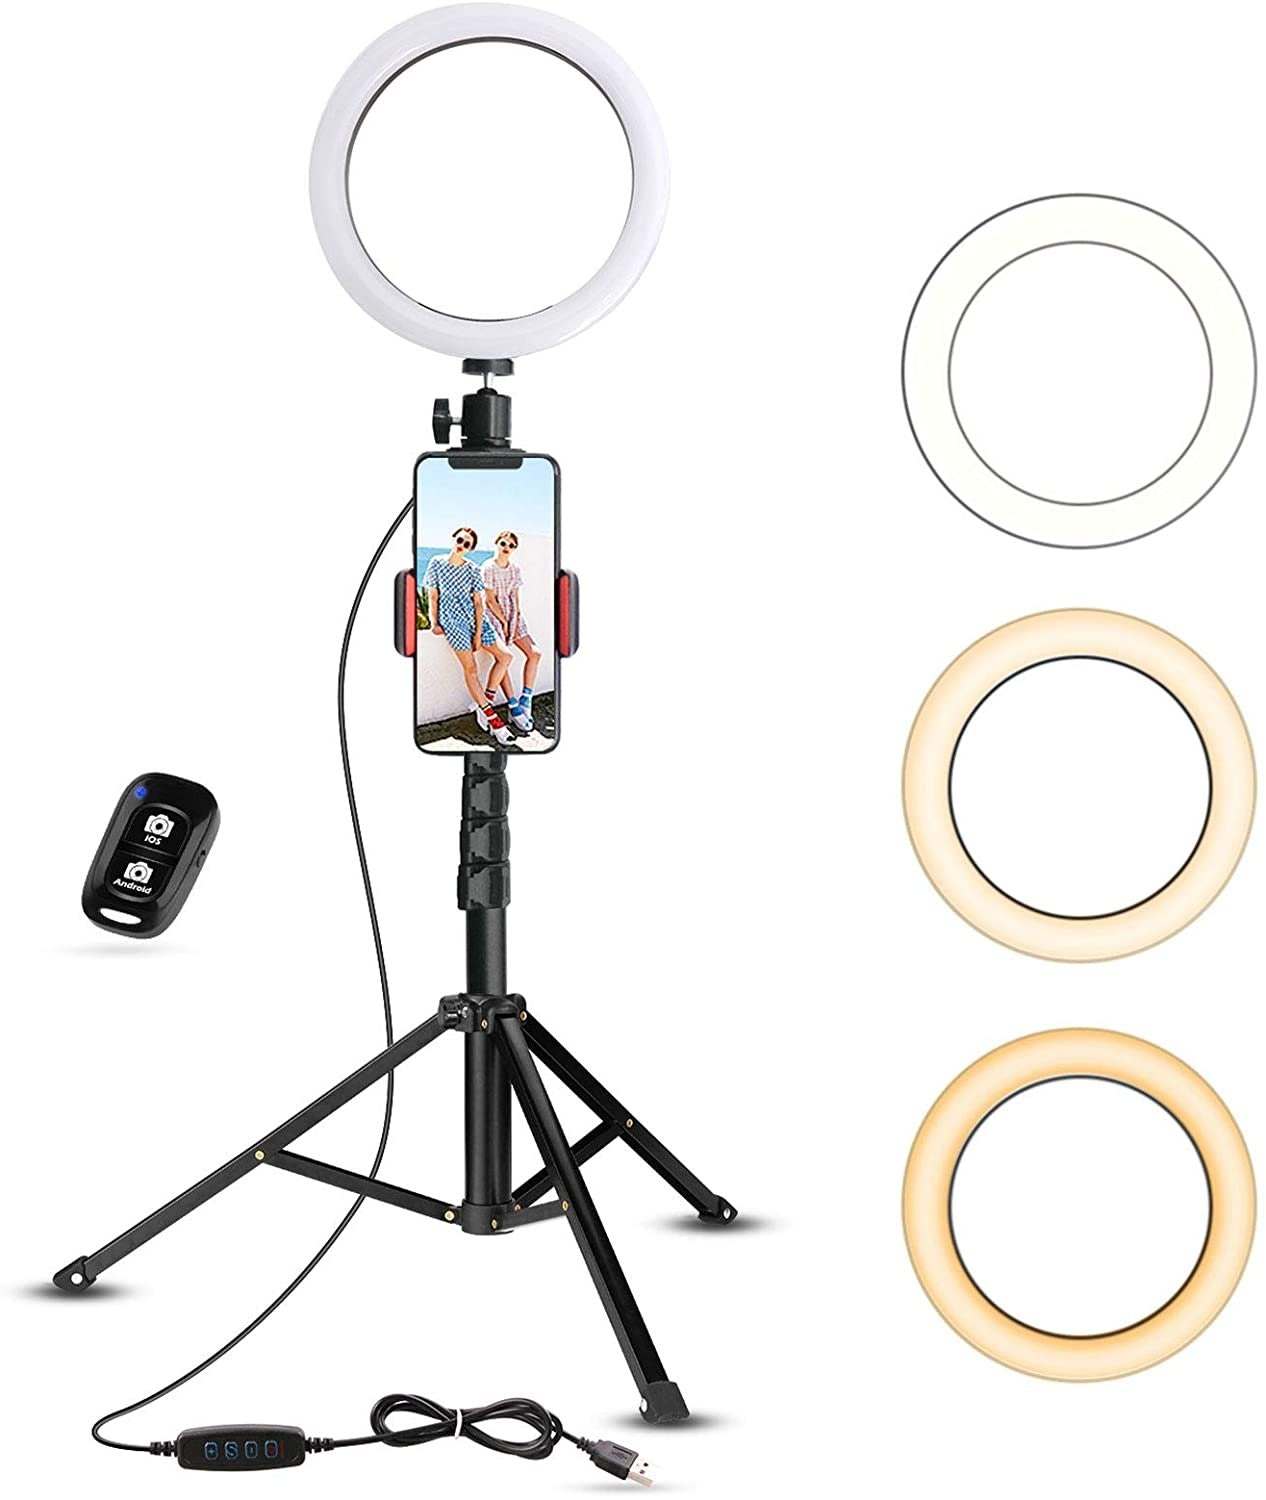 Ring Light With Stand & Phone Holder